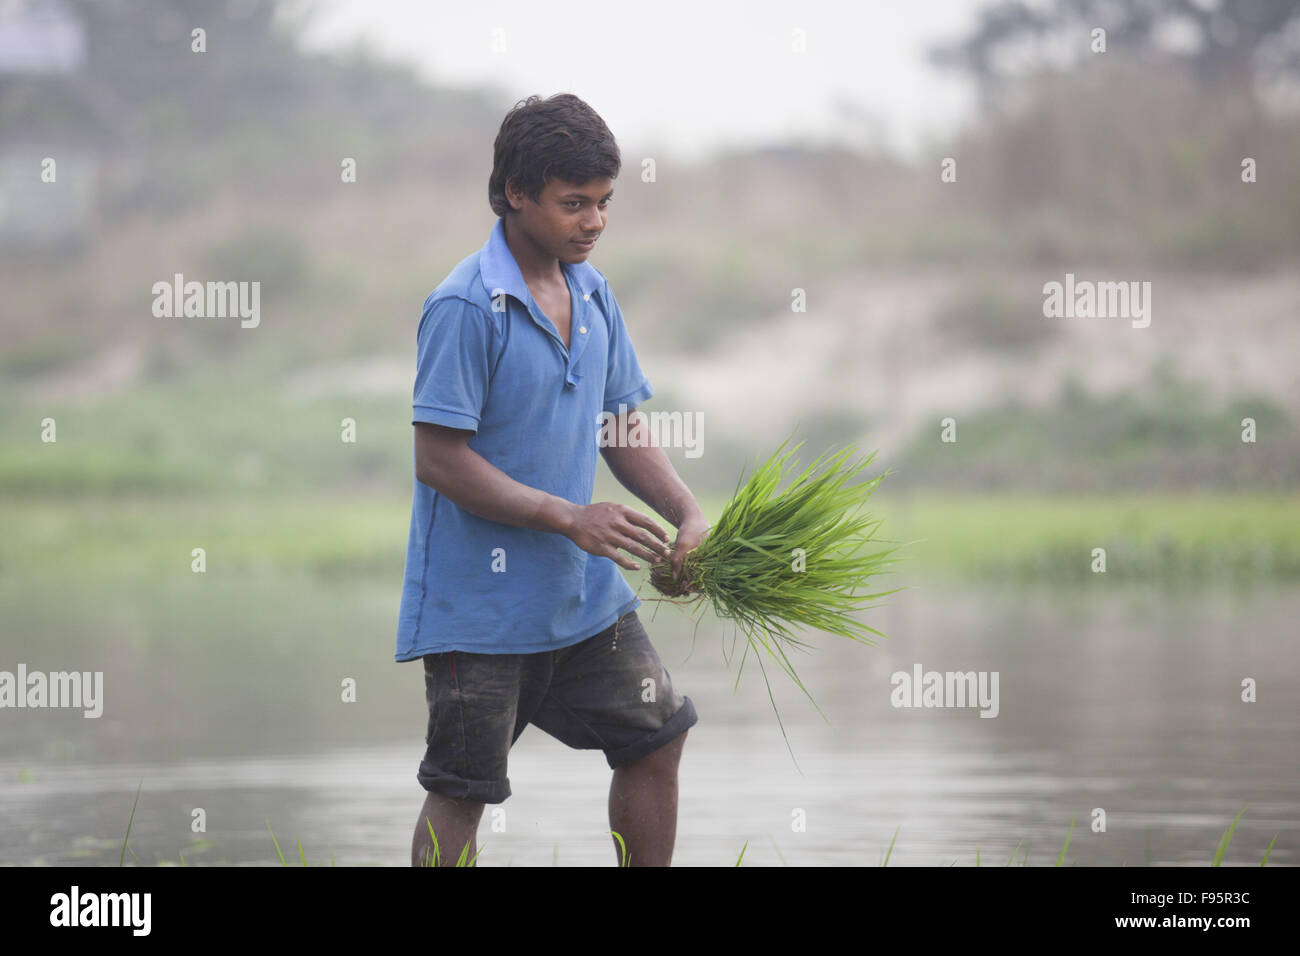 Dhaka, Bangladesh. 14th Dec, 2015. A Bangladeshi farmer plants paddy seedlings in a field at Savar, near Dhaka, - Stock Image